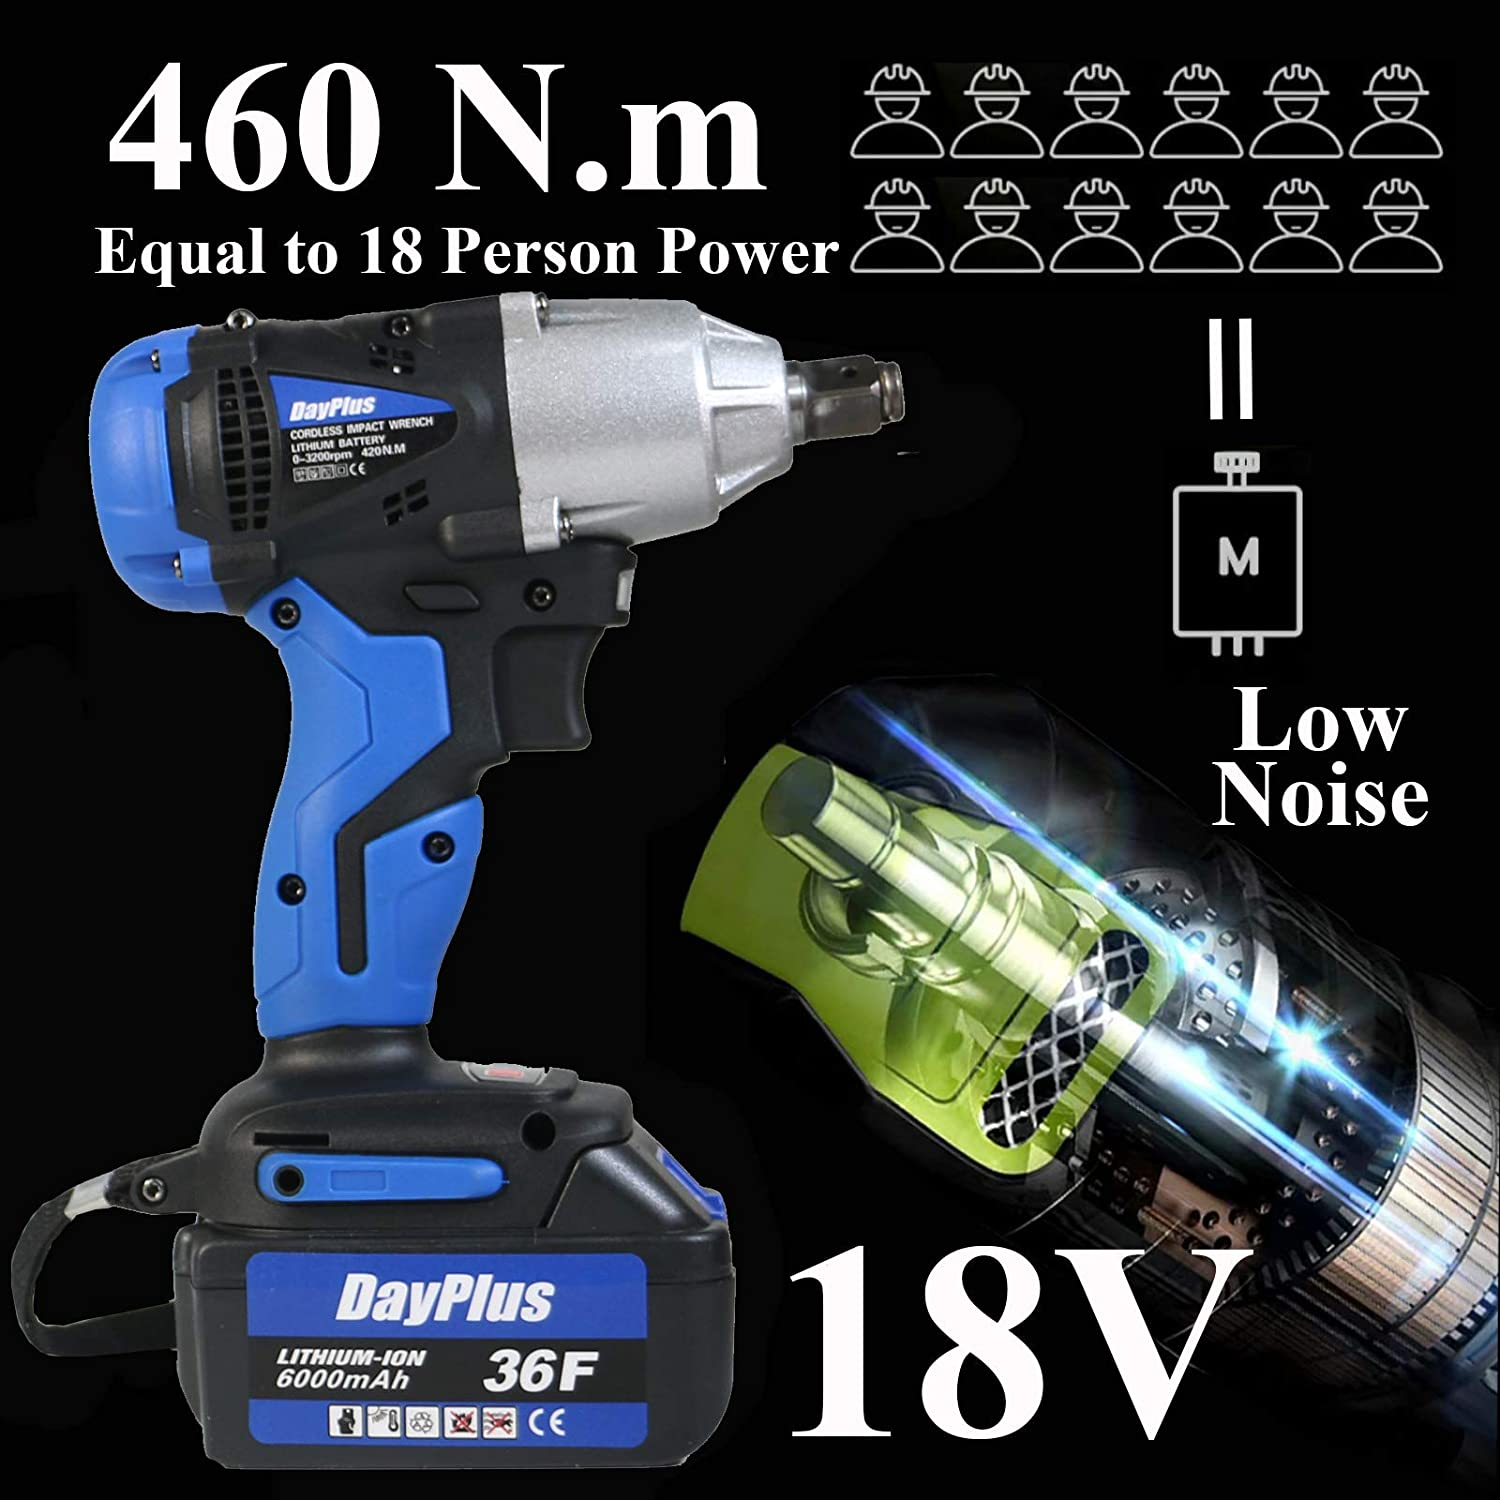 Socket Set Kit Variable Speed Trigger with 18V Lithium-Ion Battery Waterproof ZanGe 460Nm Electric Impact Compact Wrench,Cordless 1//2 Output Shaft